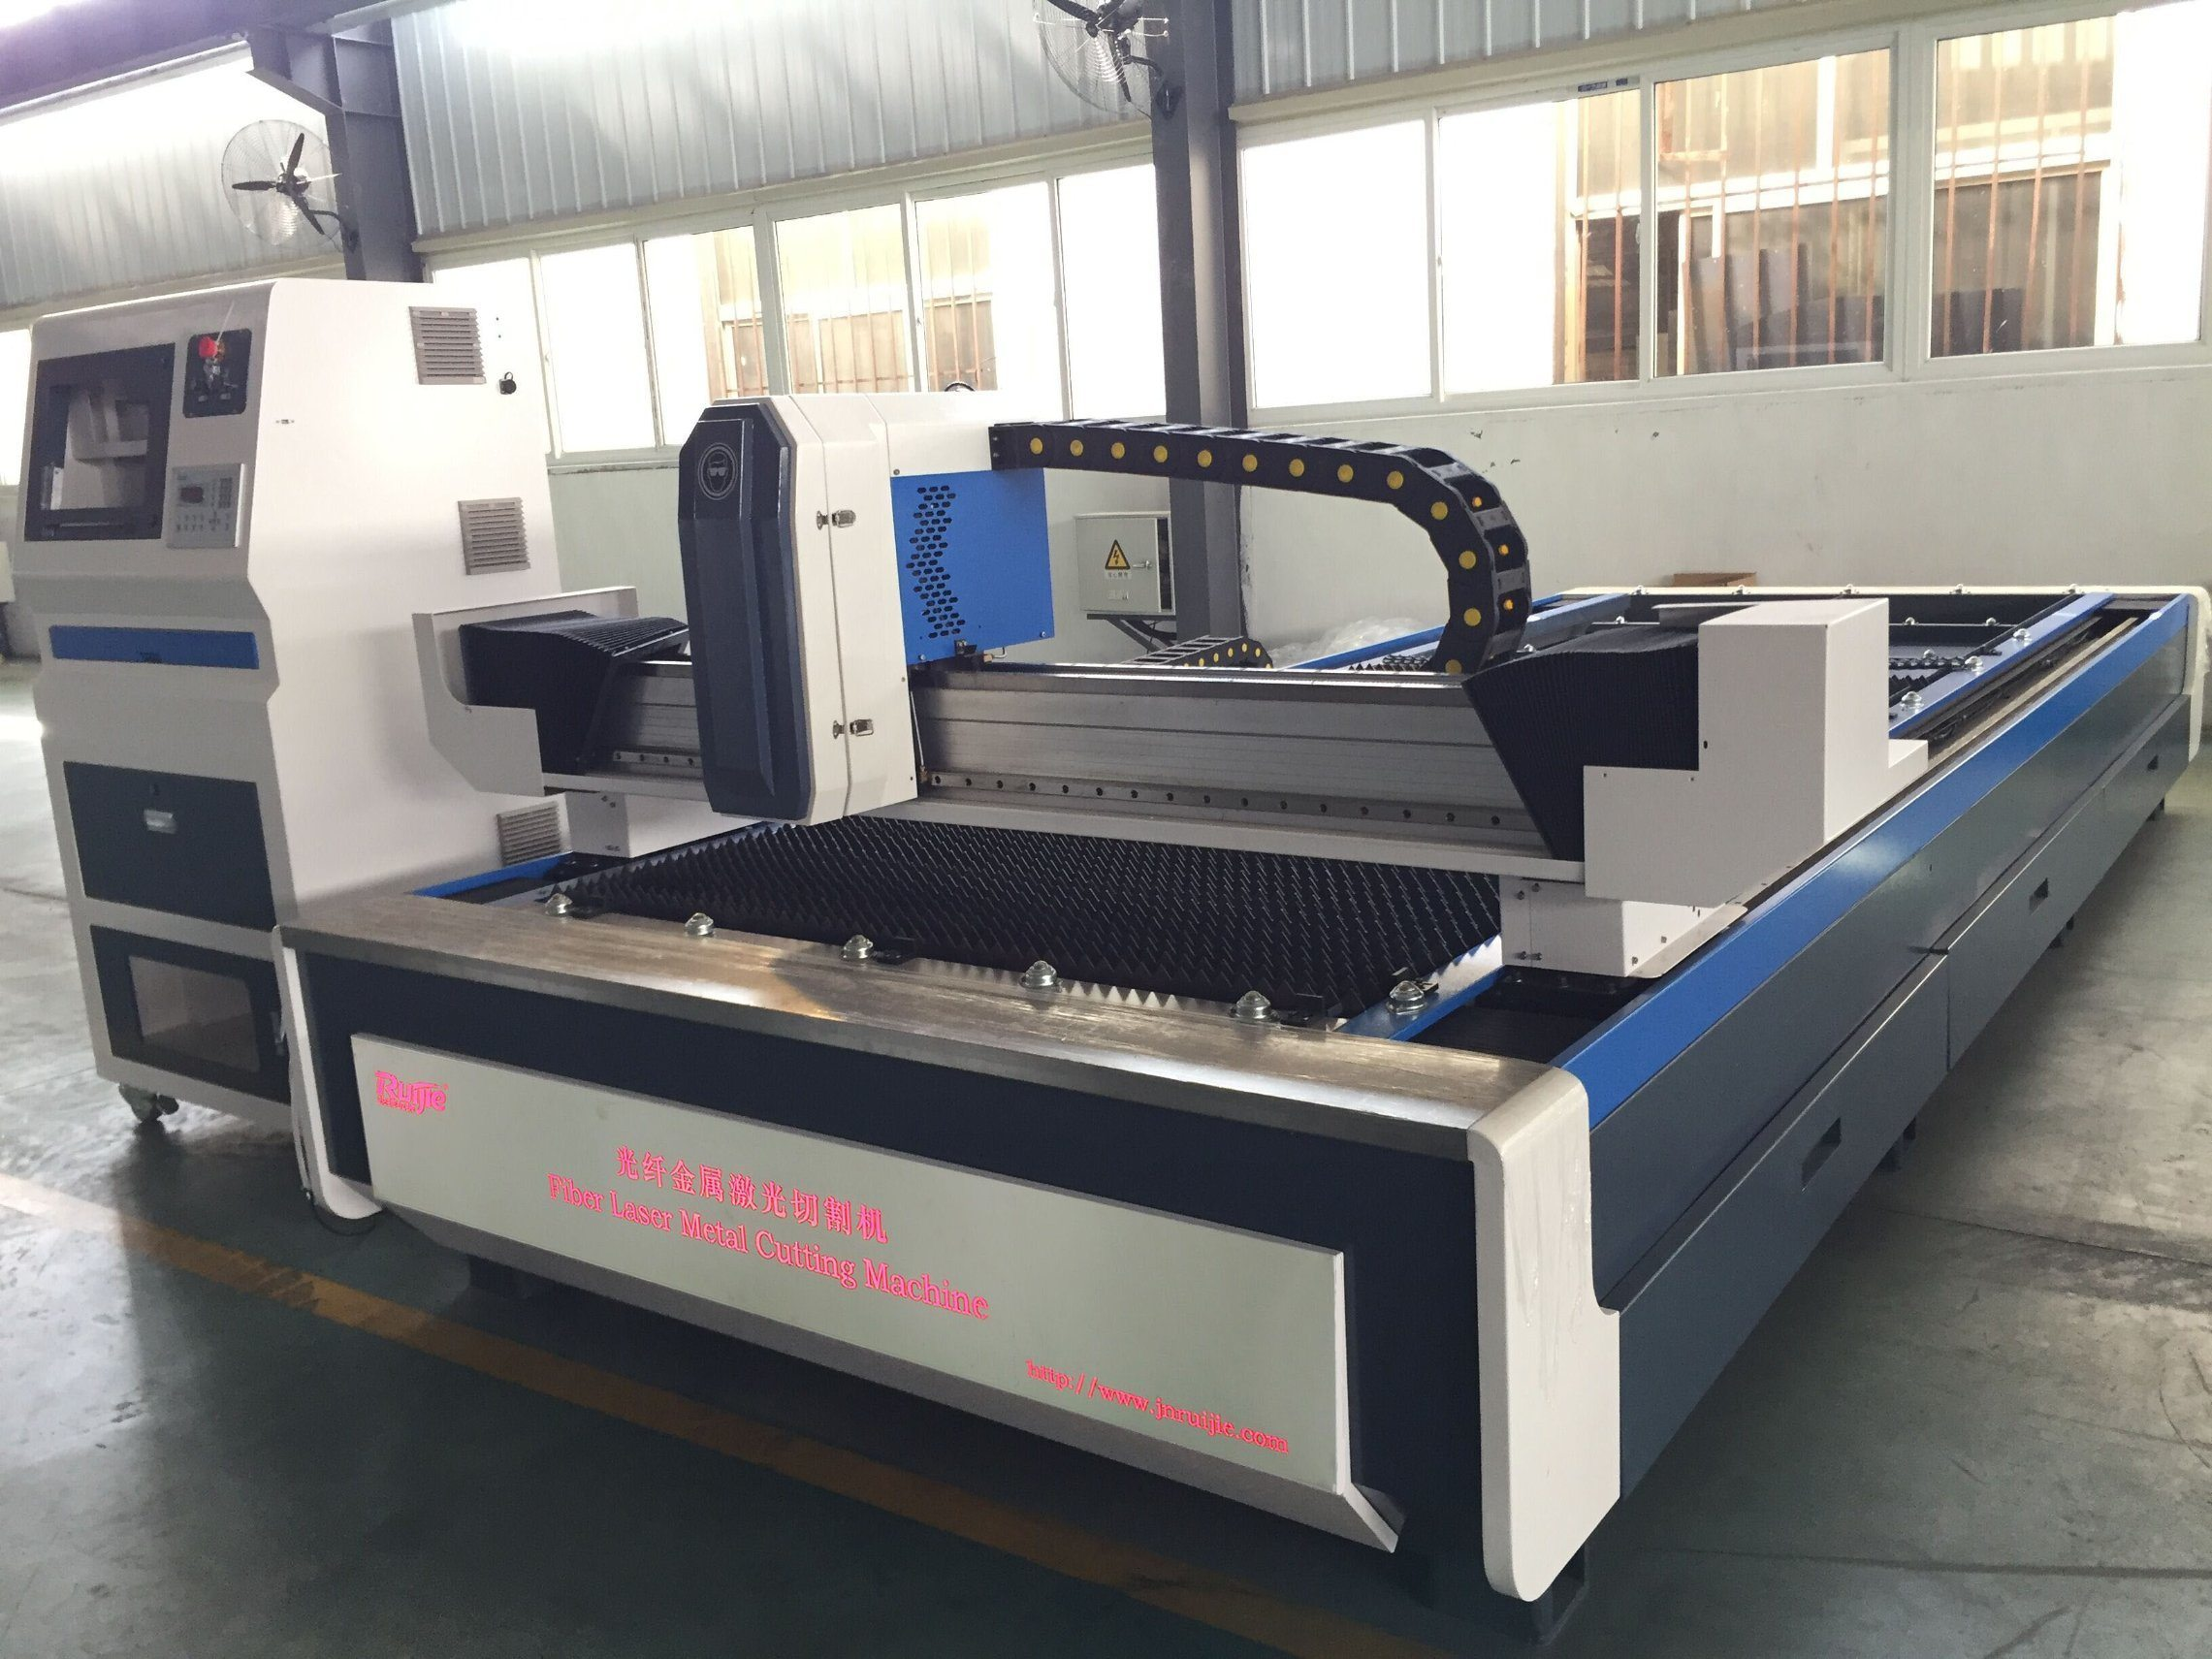 China Stainless Steel Cypcut Raycus 1000W CNC Fiber Laser Cutting Machine  Price - China Laser Cutter, Fiber Laser Cutting Machine